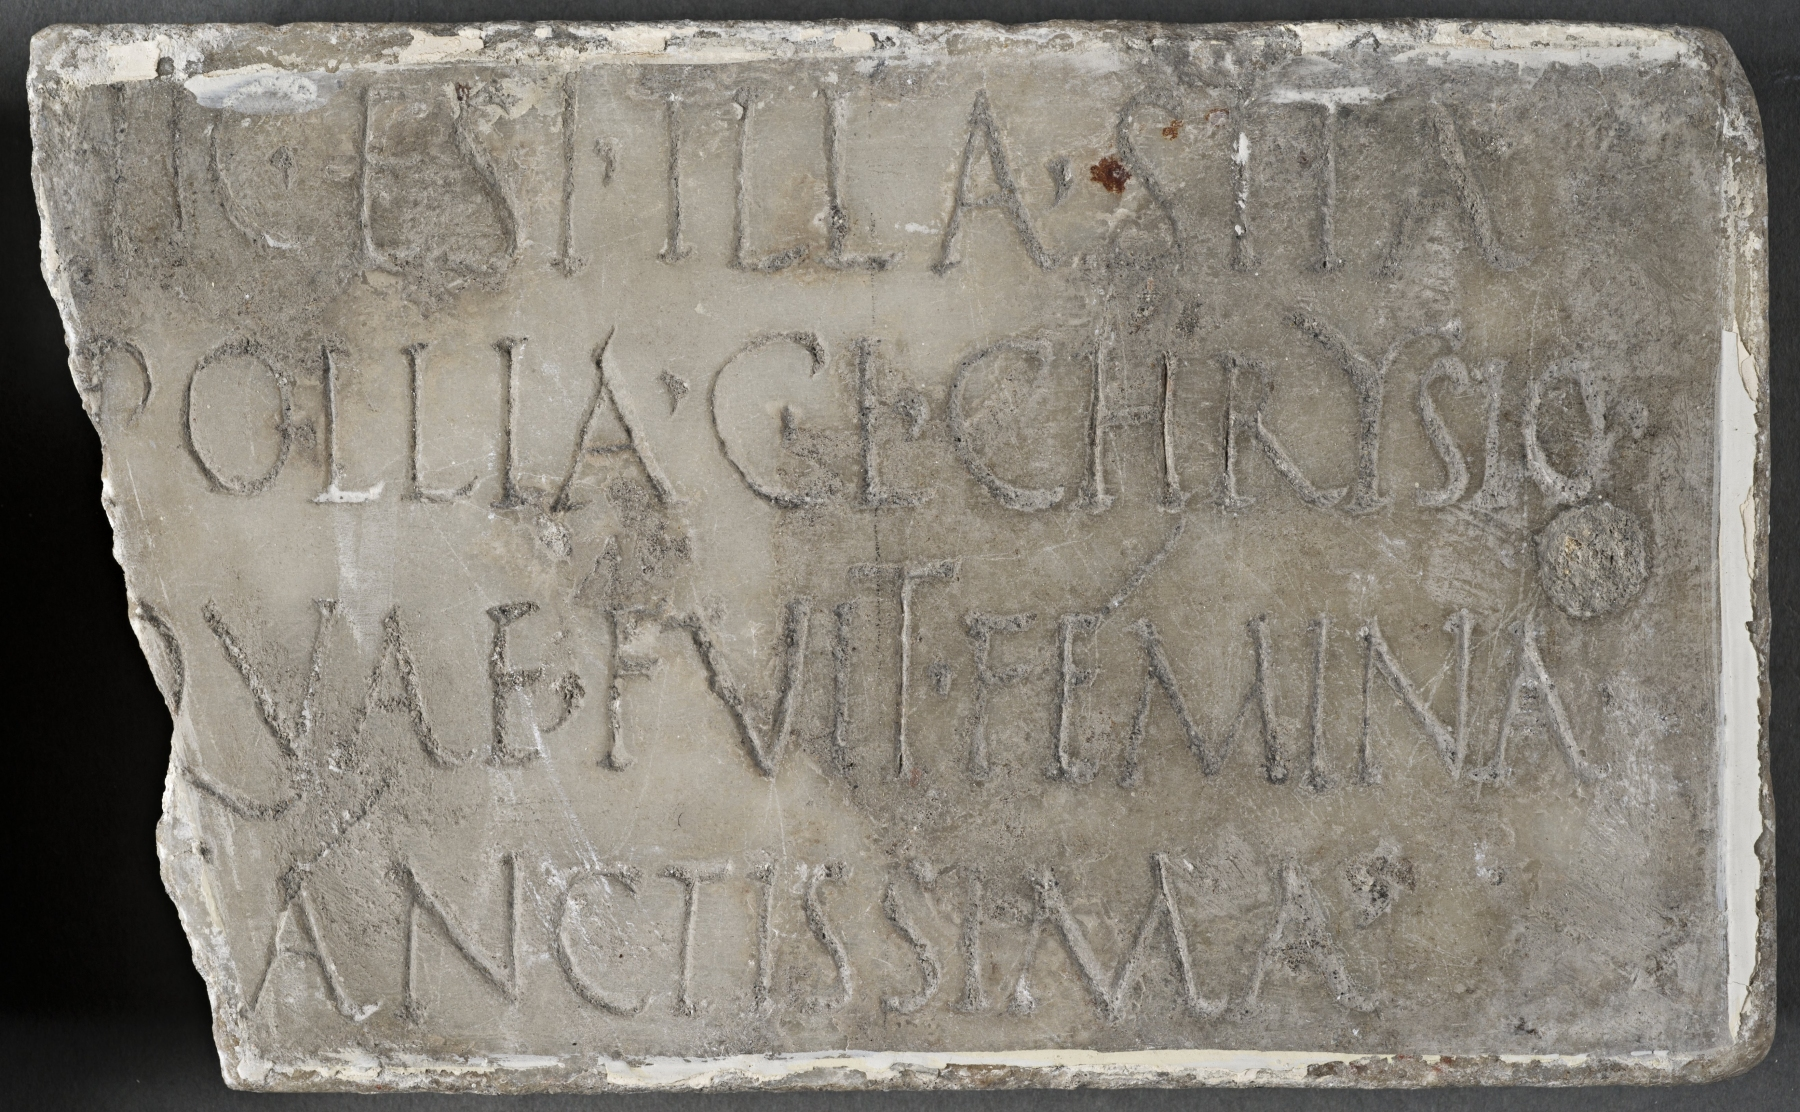 Plaque from the tomb of Pollia Chrysio